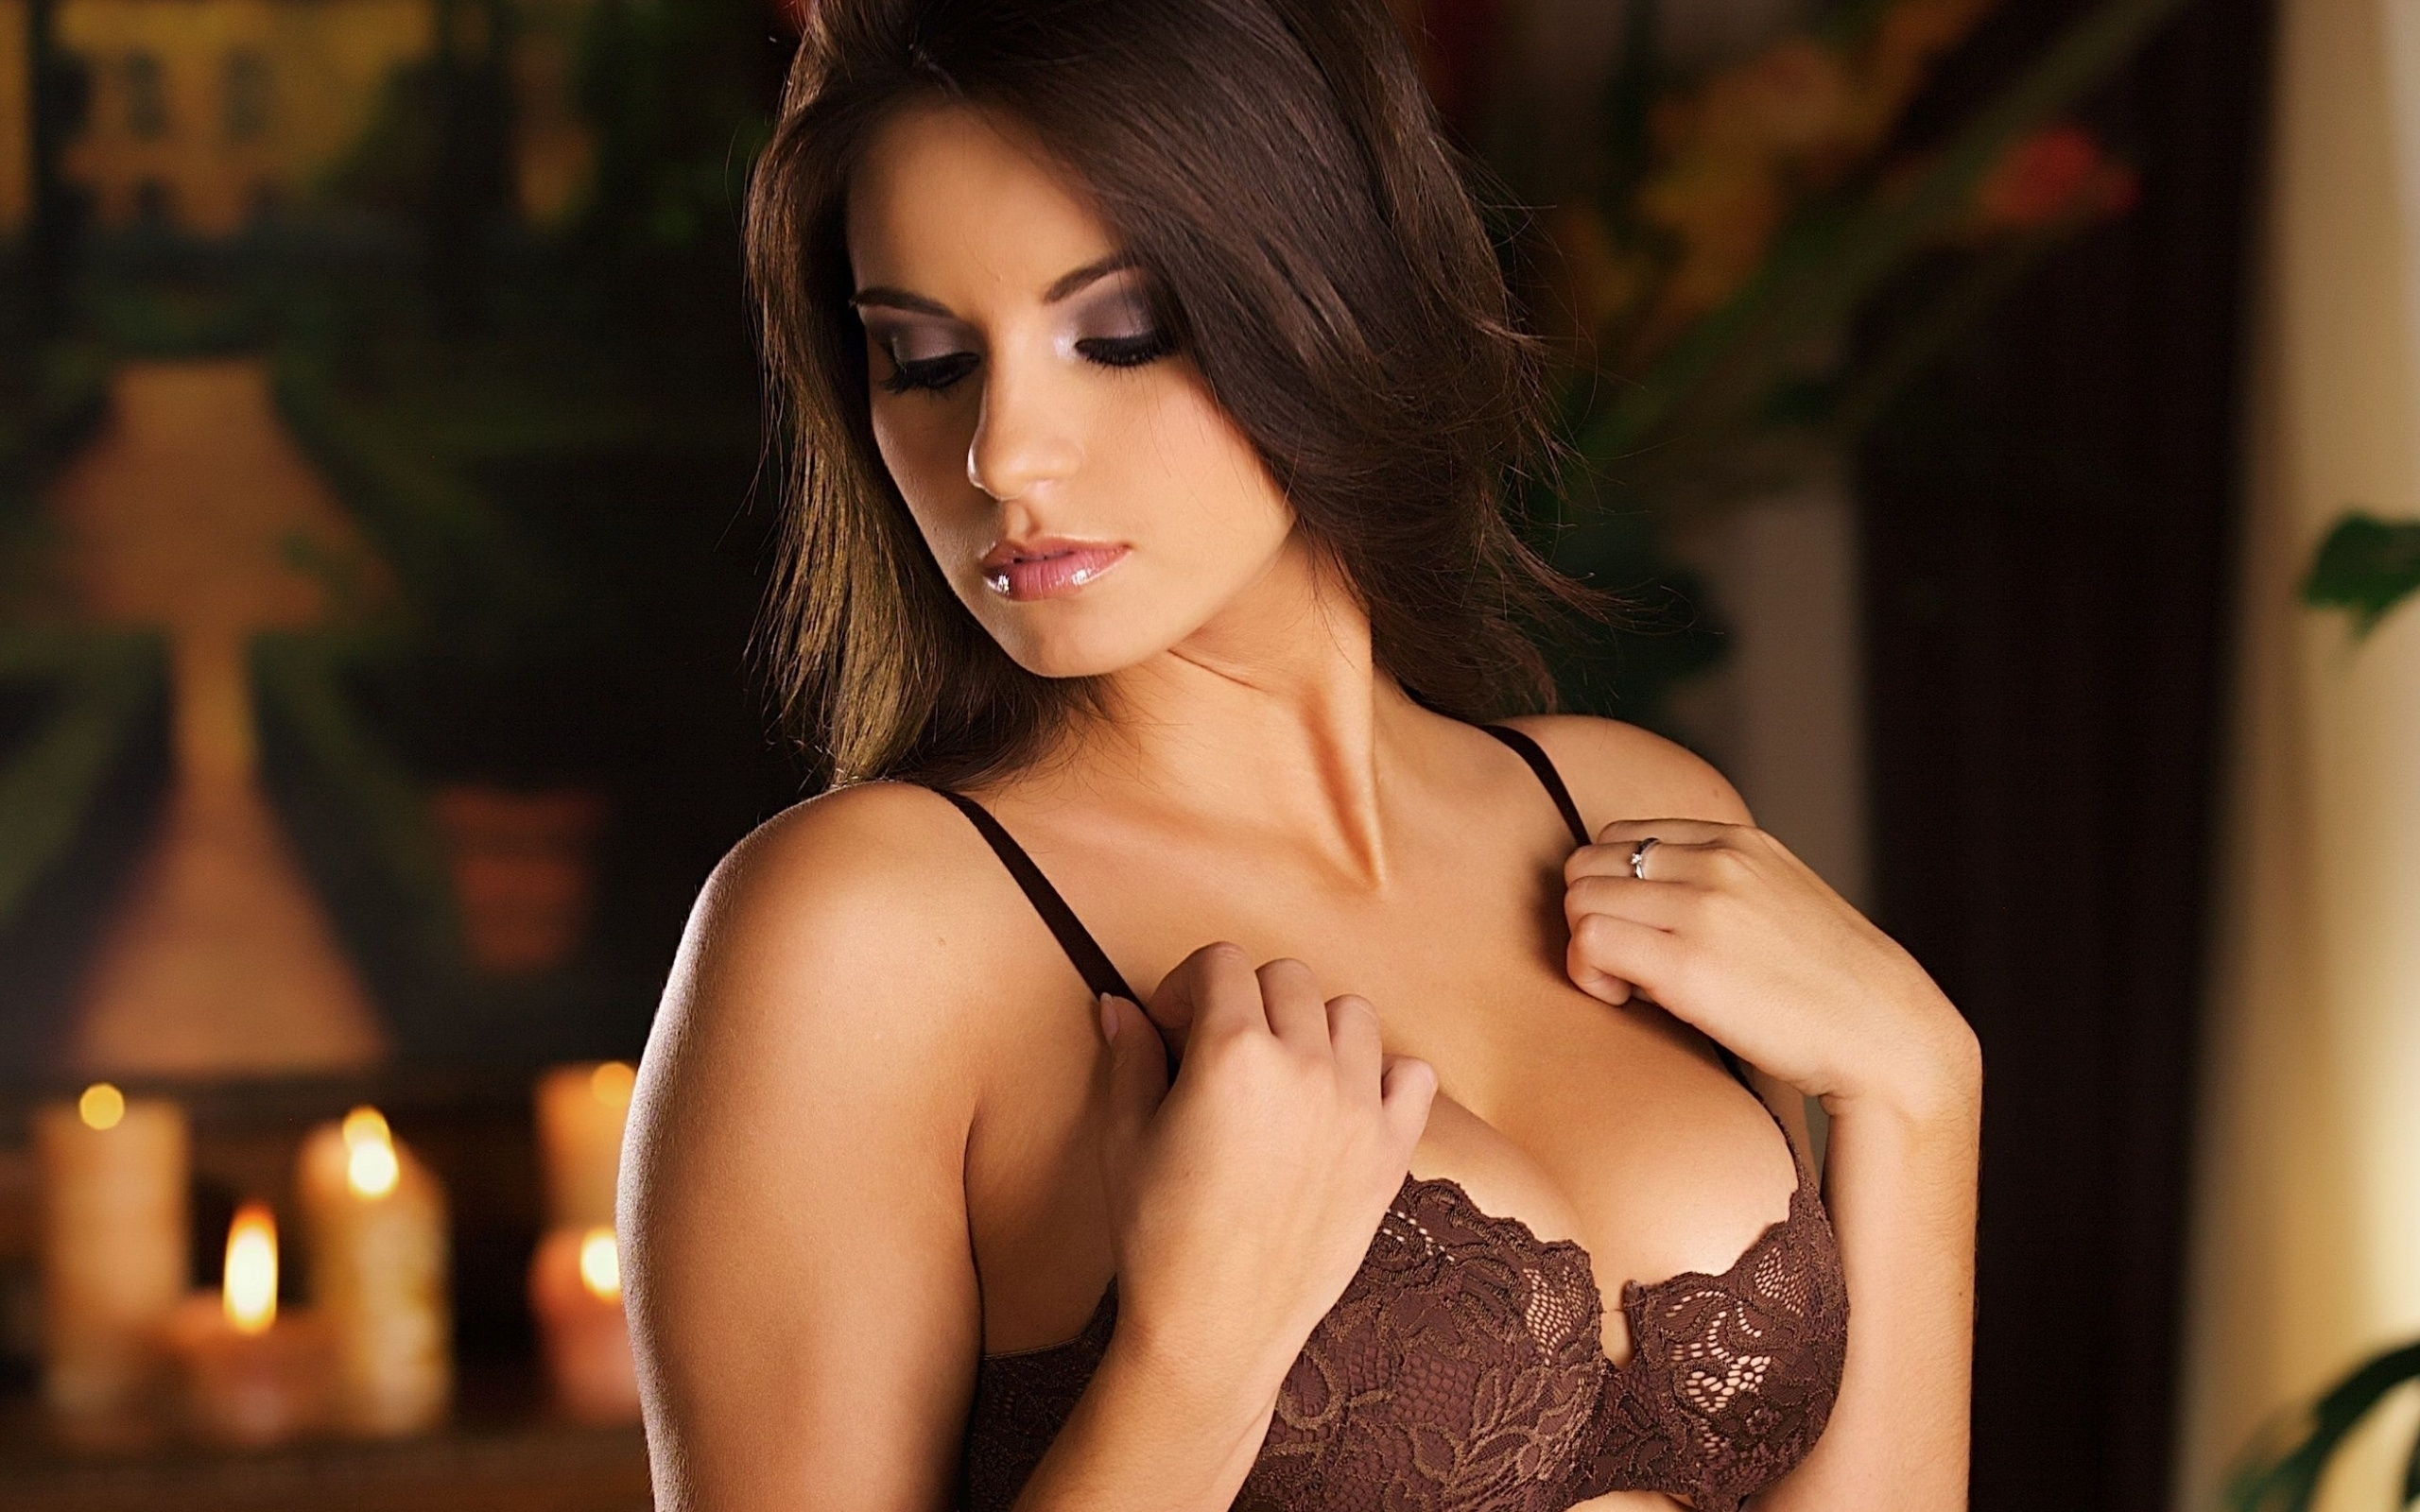 brunette hot girl bra lingerie NSFW Not Safe For Work ...